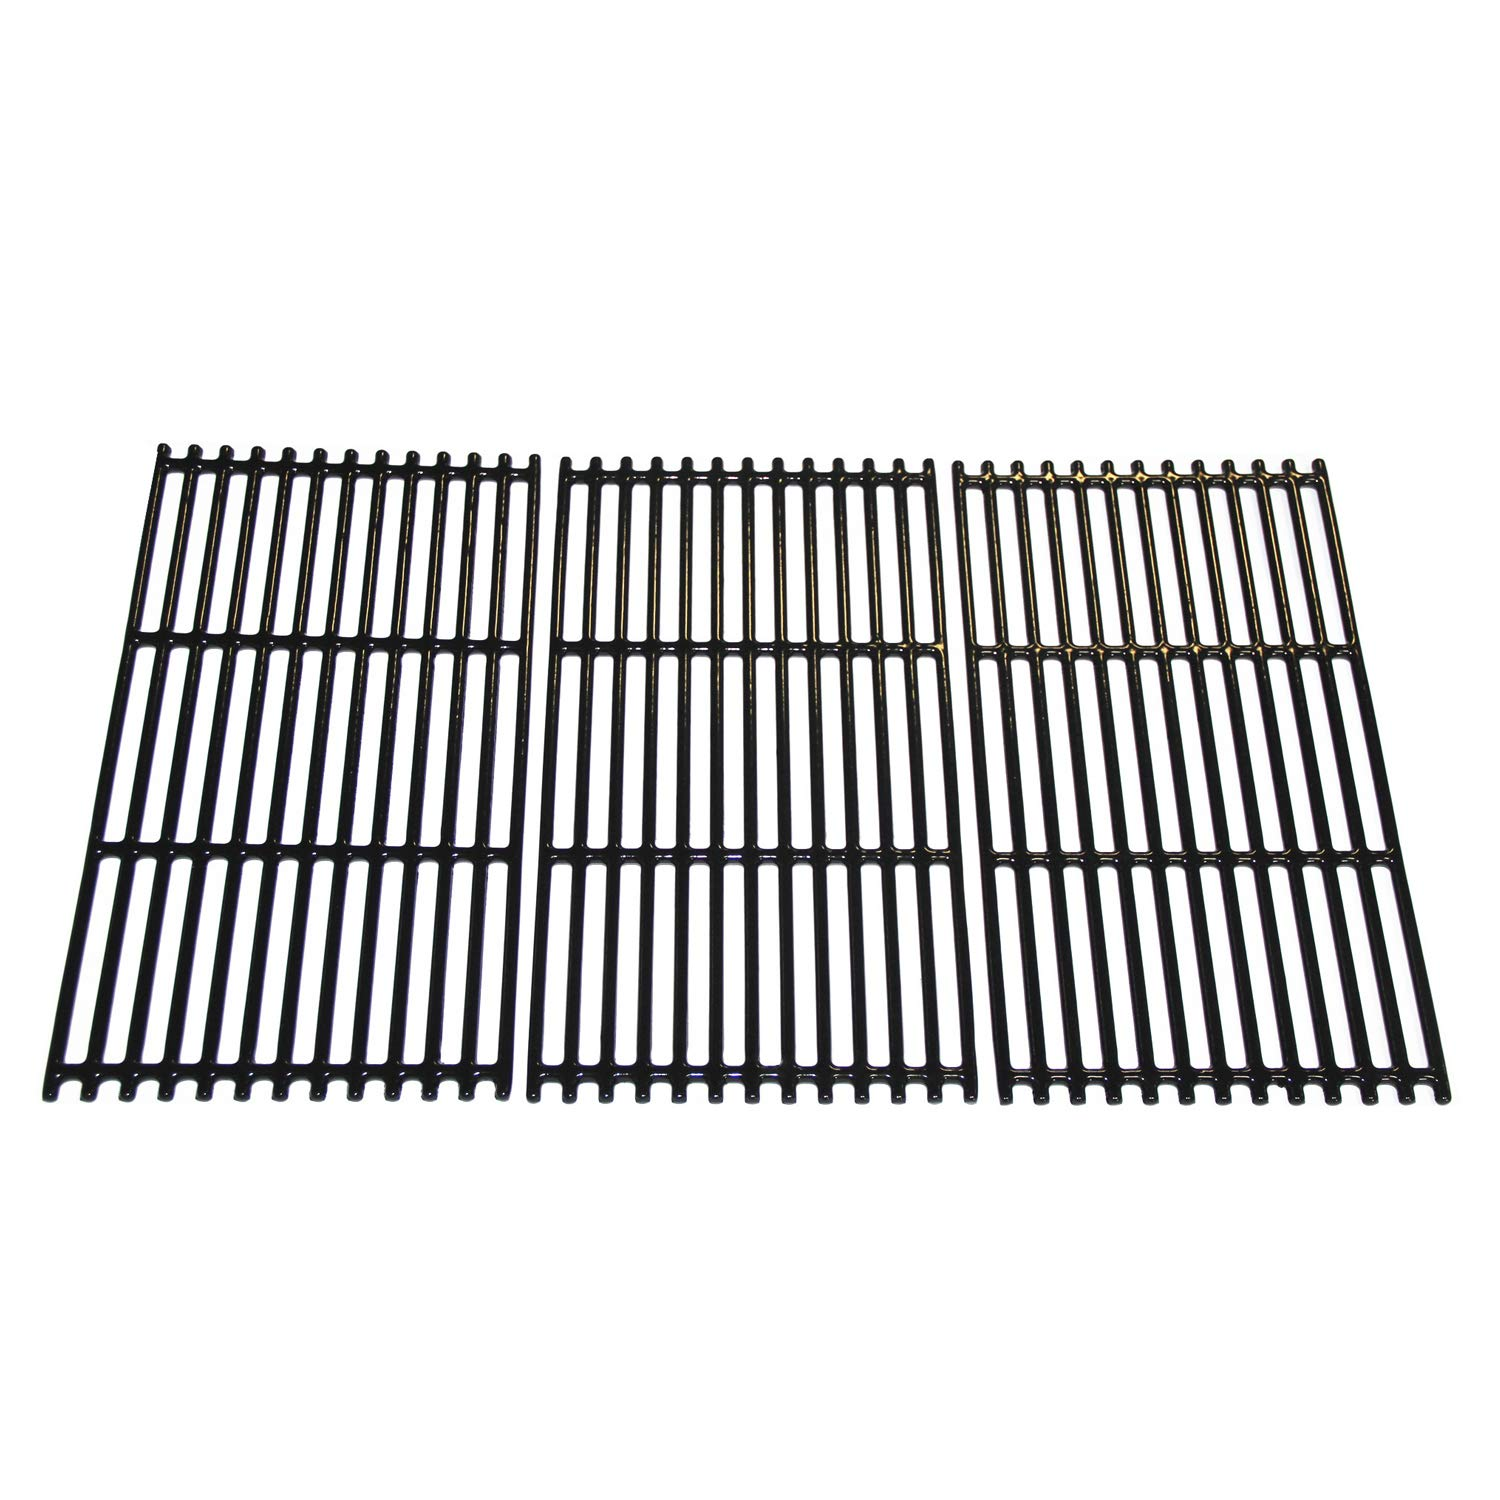 Hongso 17 1/16'' Porcelain Coated Cast Iron Grill Grates Replacement for Charbroil 463242716, 466242715, 463242715, 466242815 Grill, G533-0009-W1, Lowe's #606682, Walmart # 555179228 (PCB004) 3 Pack by Hongso